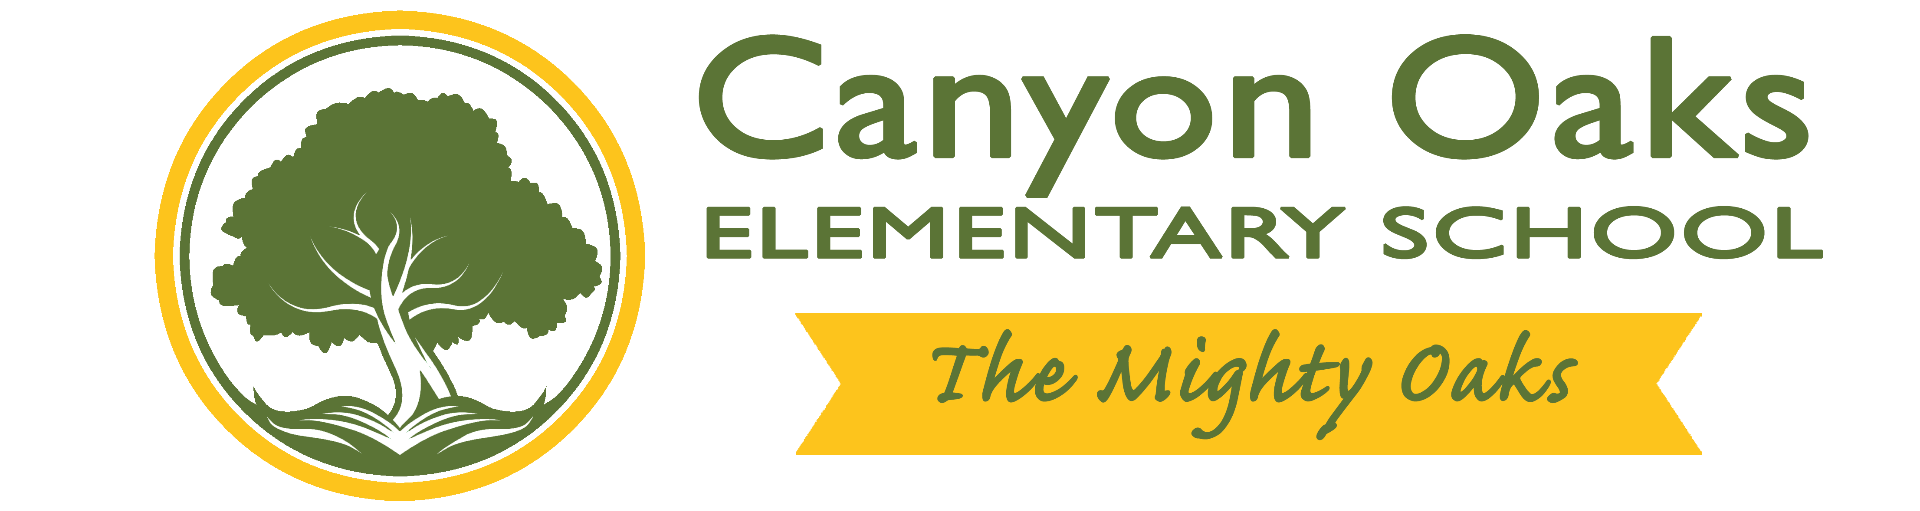 Canyon Oak logo